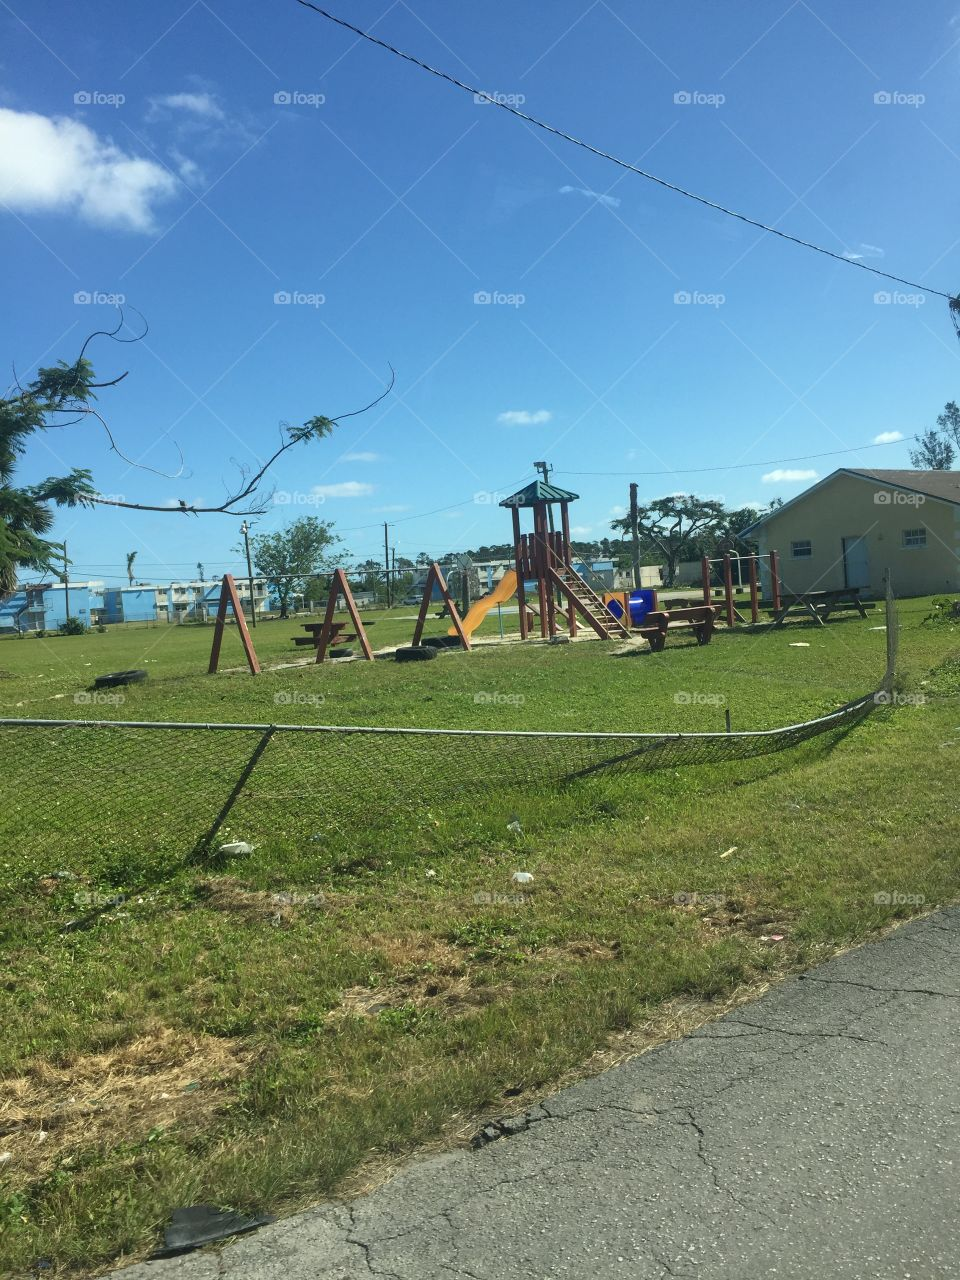 A native man in the Bahamas took my family on a tour of the island and I saw this playground. I was shocked about the condition and how it is still being used, really opened my eyes as to how often we take things for granted!